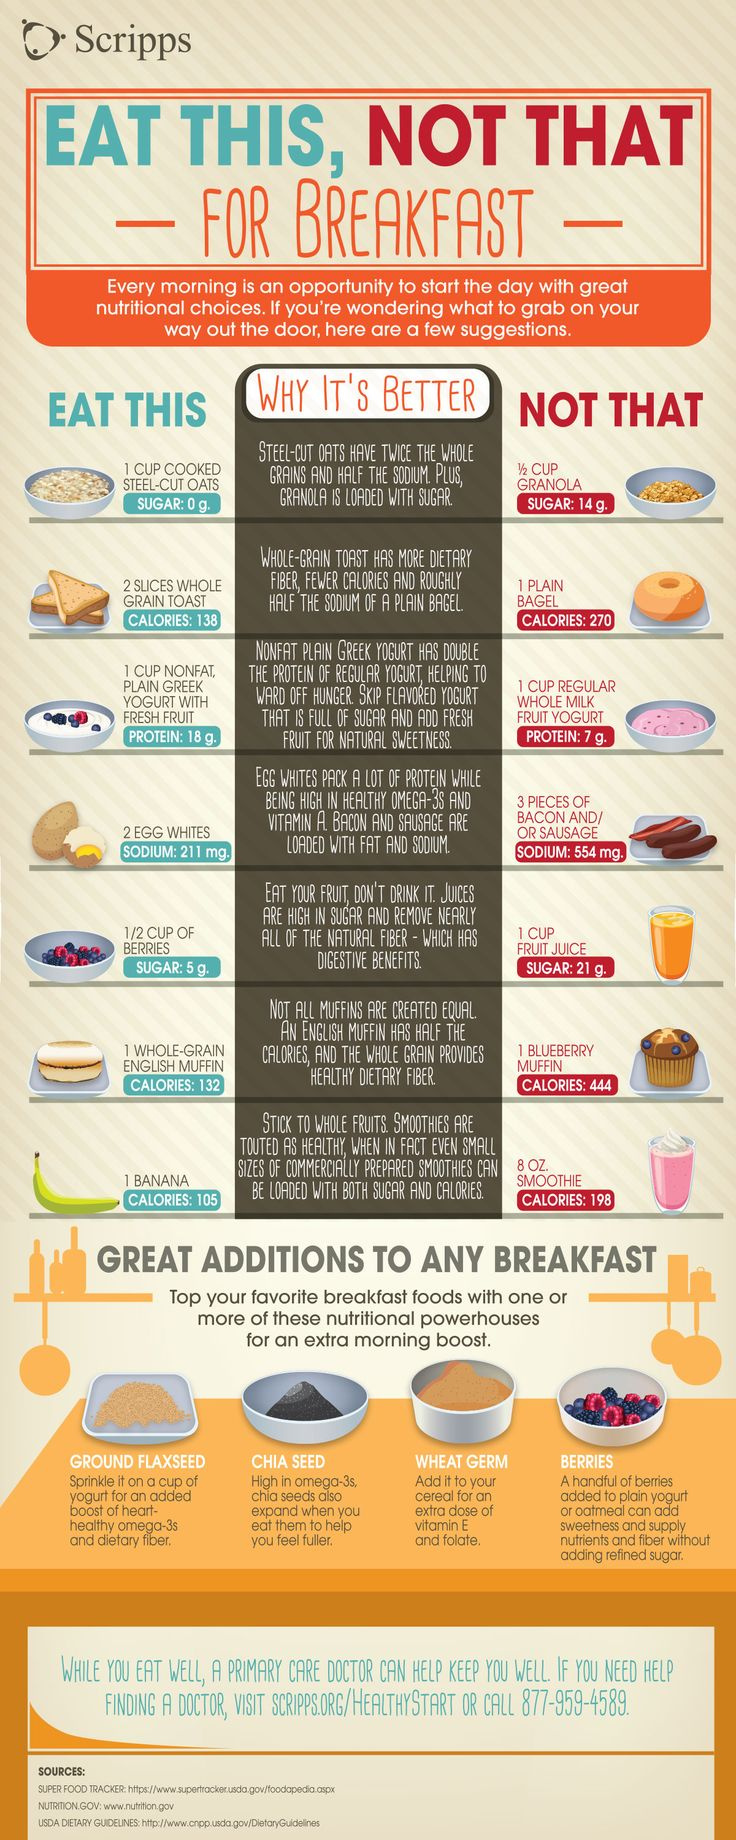 Learn what foods to swap in your breakfast for better health with this infographic from Scripps Health in San Diego.